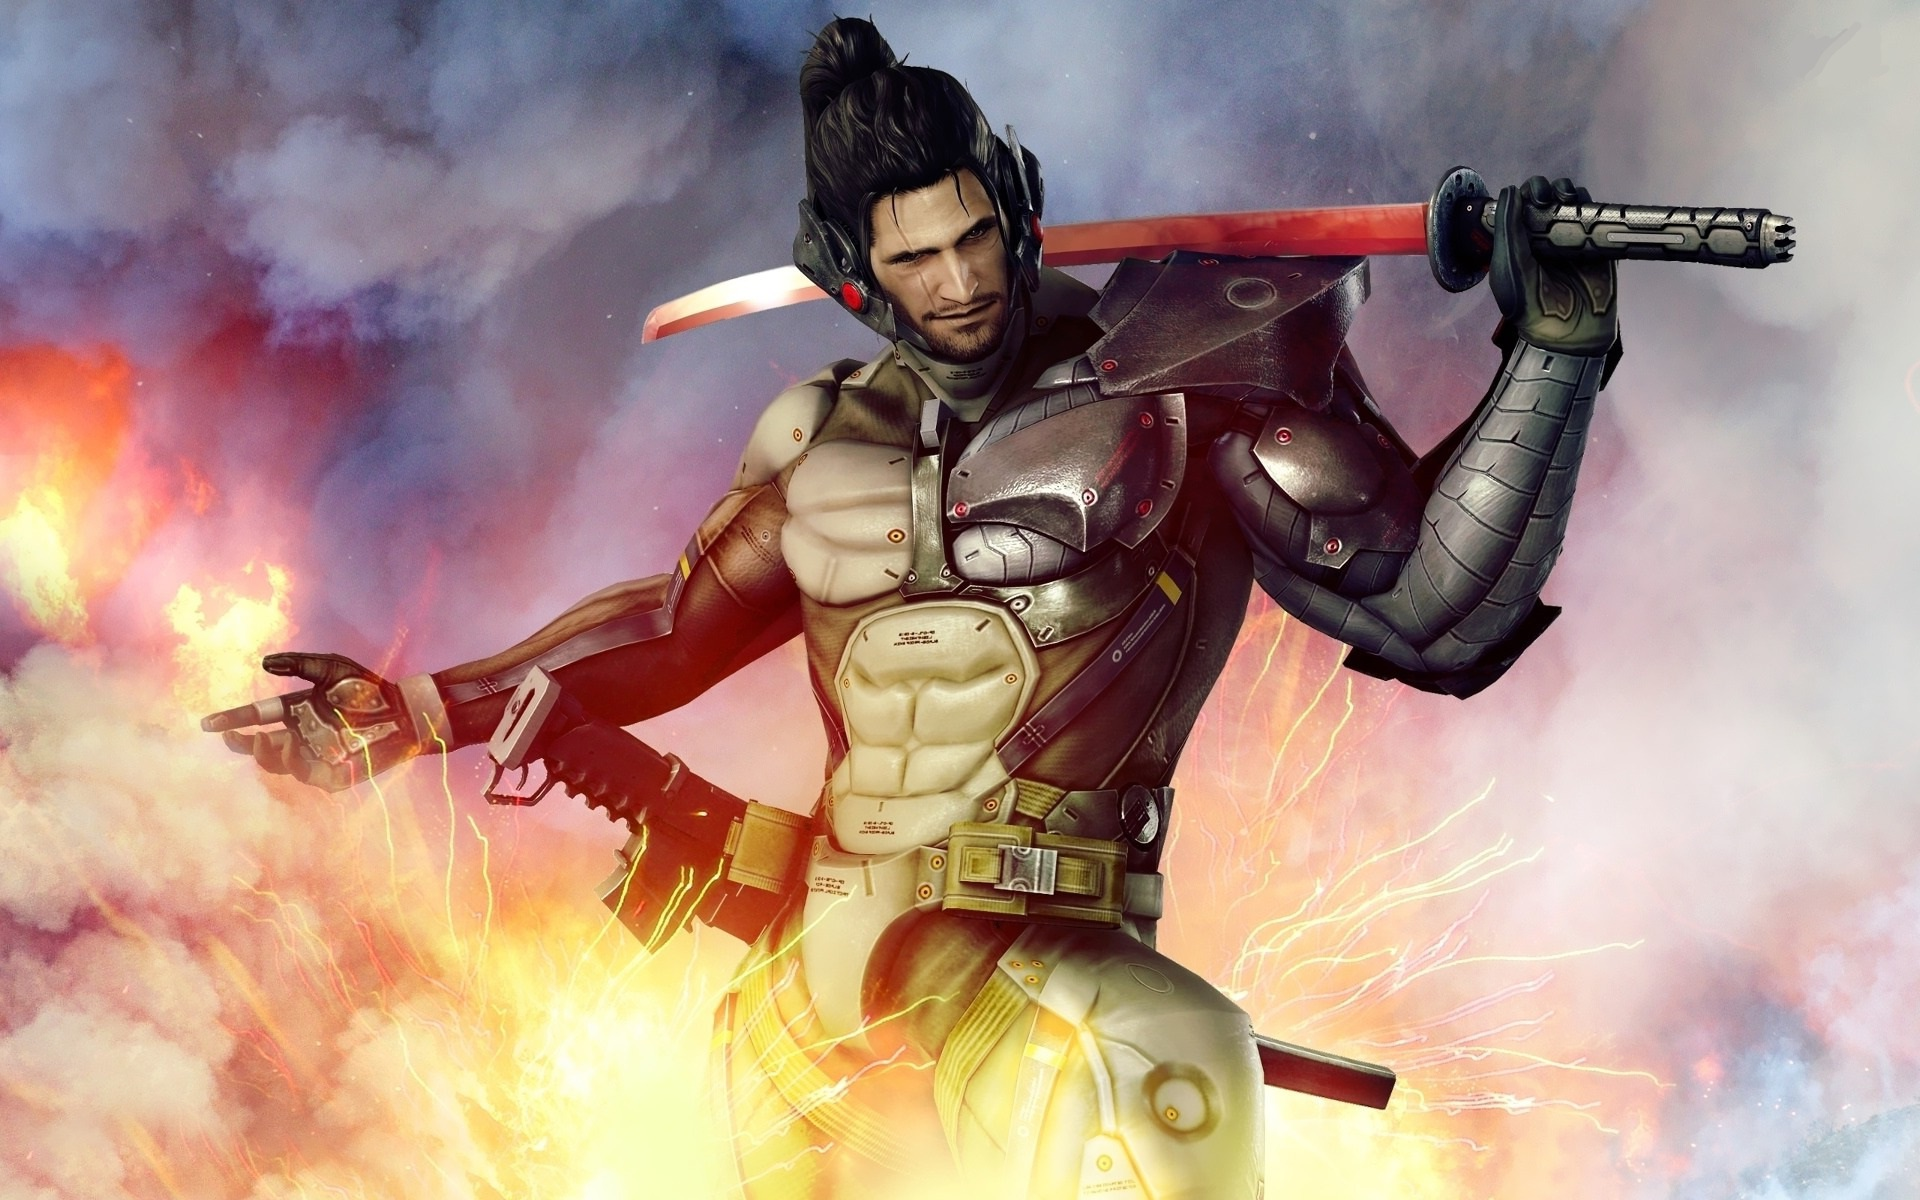 The 10 most amazing metal gear rising hd wallpapers categories gameslistsslider tagged hd wallpaperskonamimetal gearmetal gear risingraidenwallpapers voltagebd Image collections